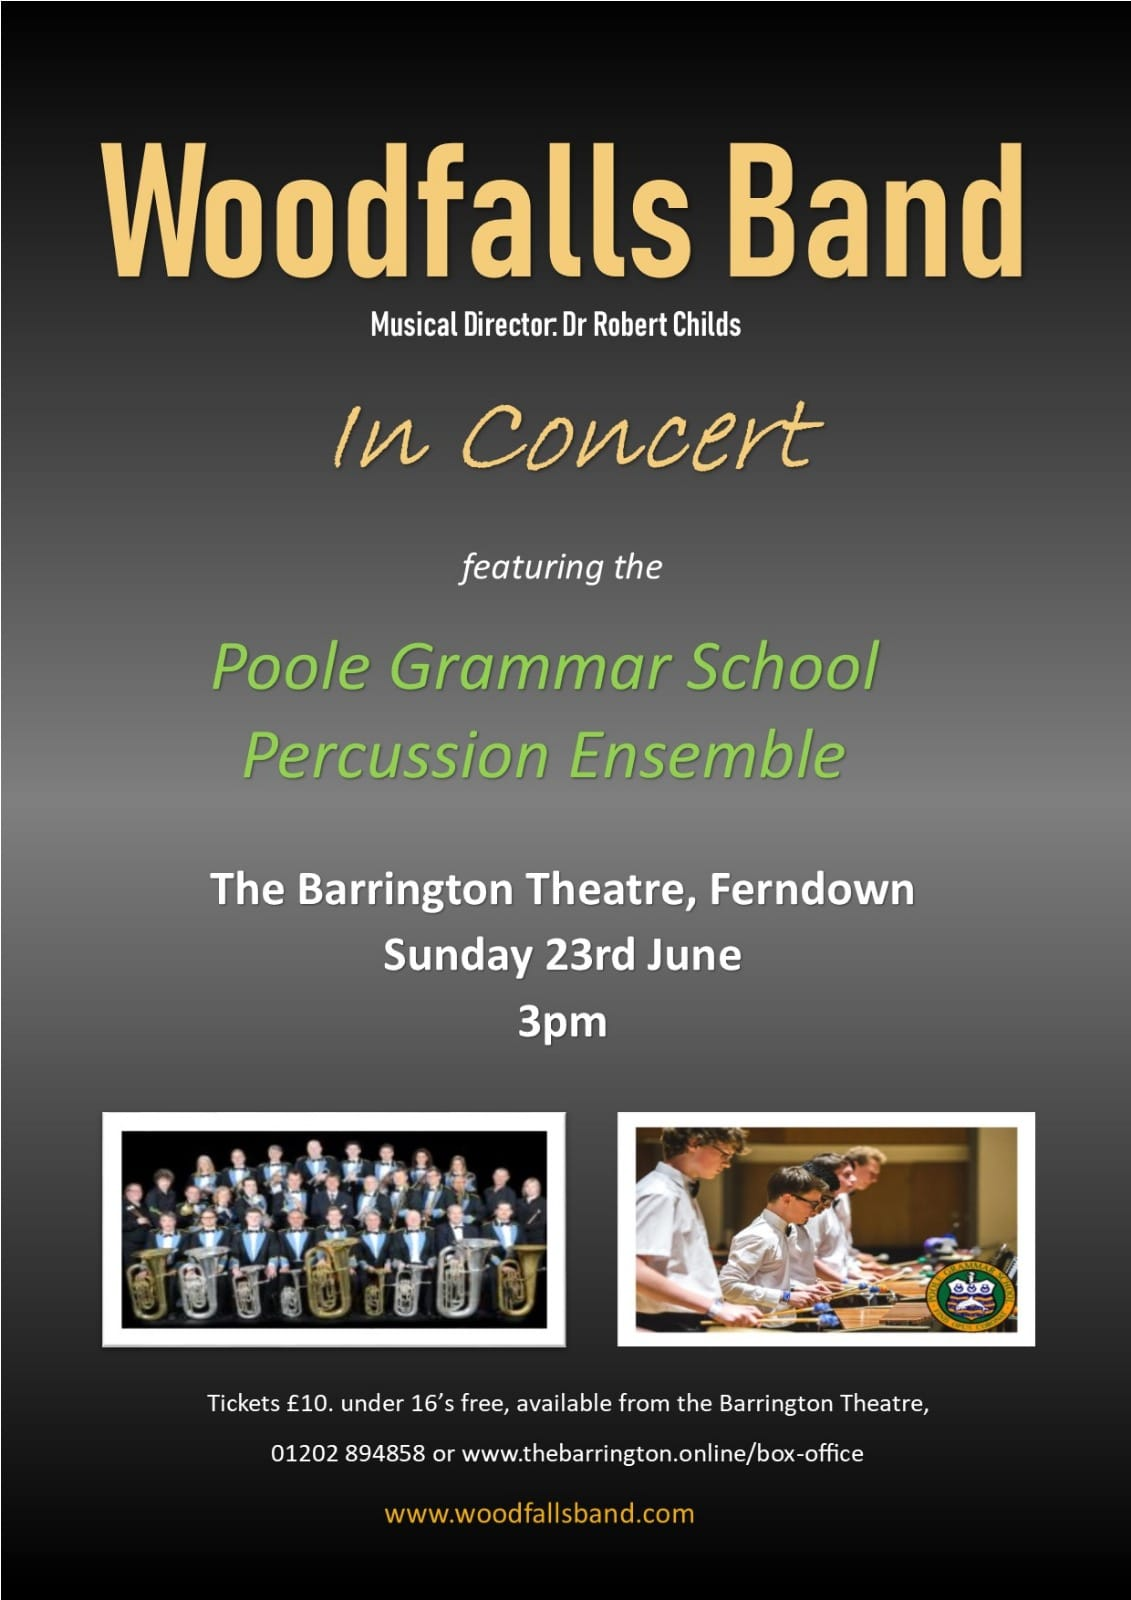 Woodfalls Band with Poole Grammar School Percussion Ensemble